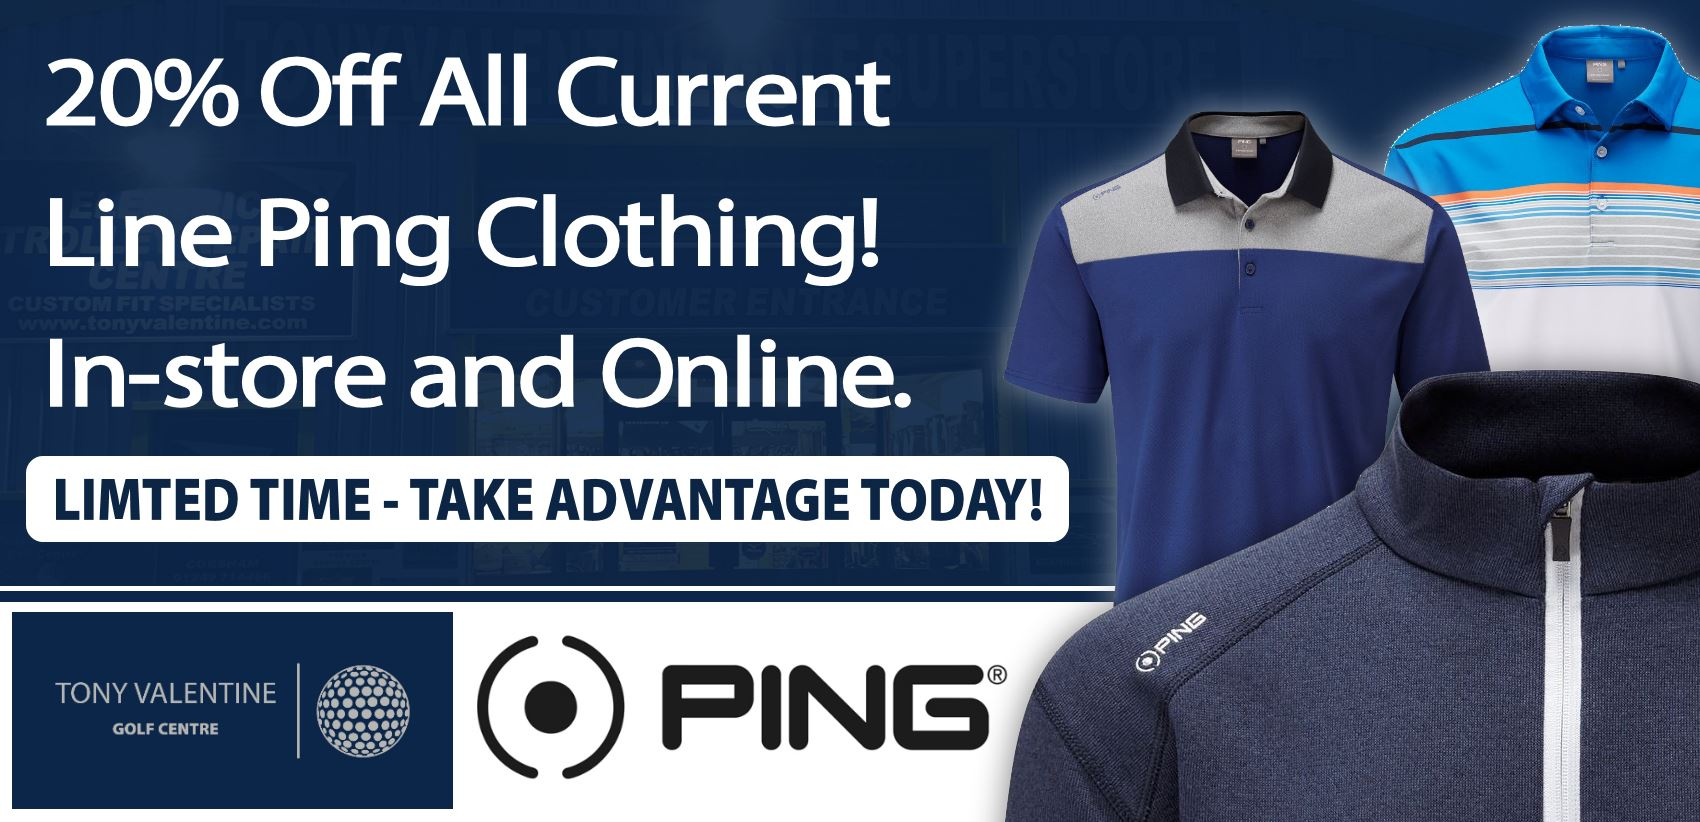 20% Off Ping Clothing